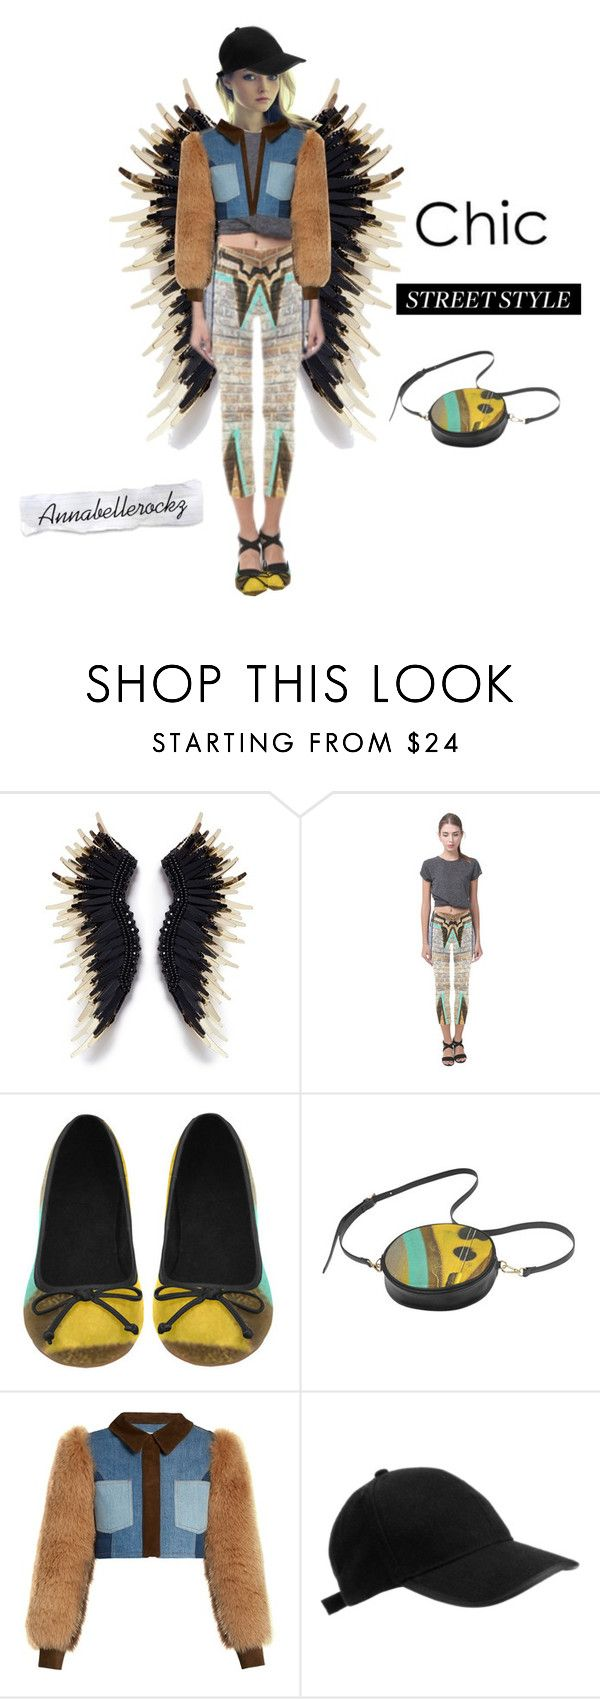 Chic streetstyle by annabellerockz on Polyvore featuring Sonia Rykiel